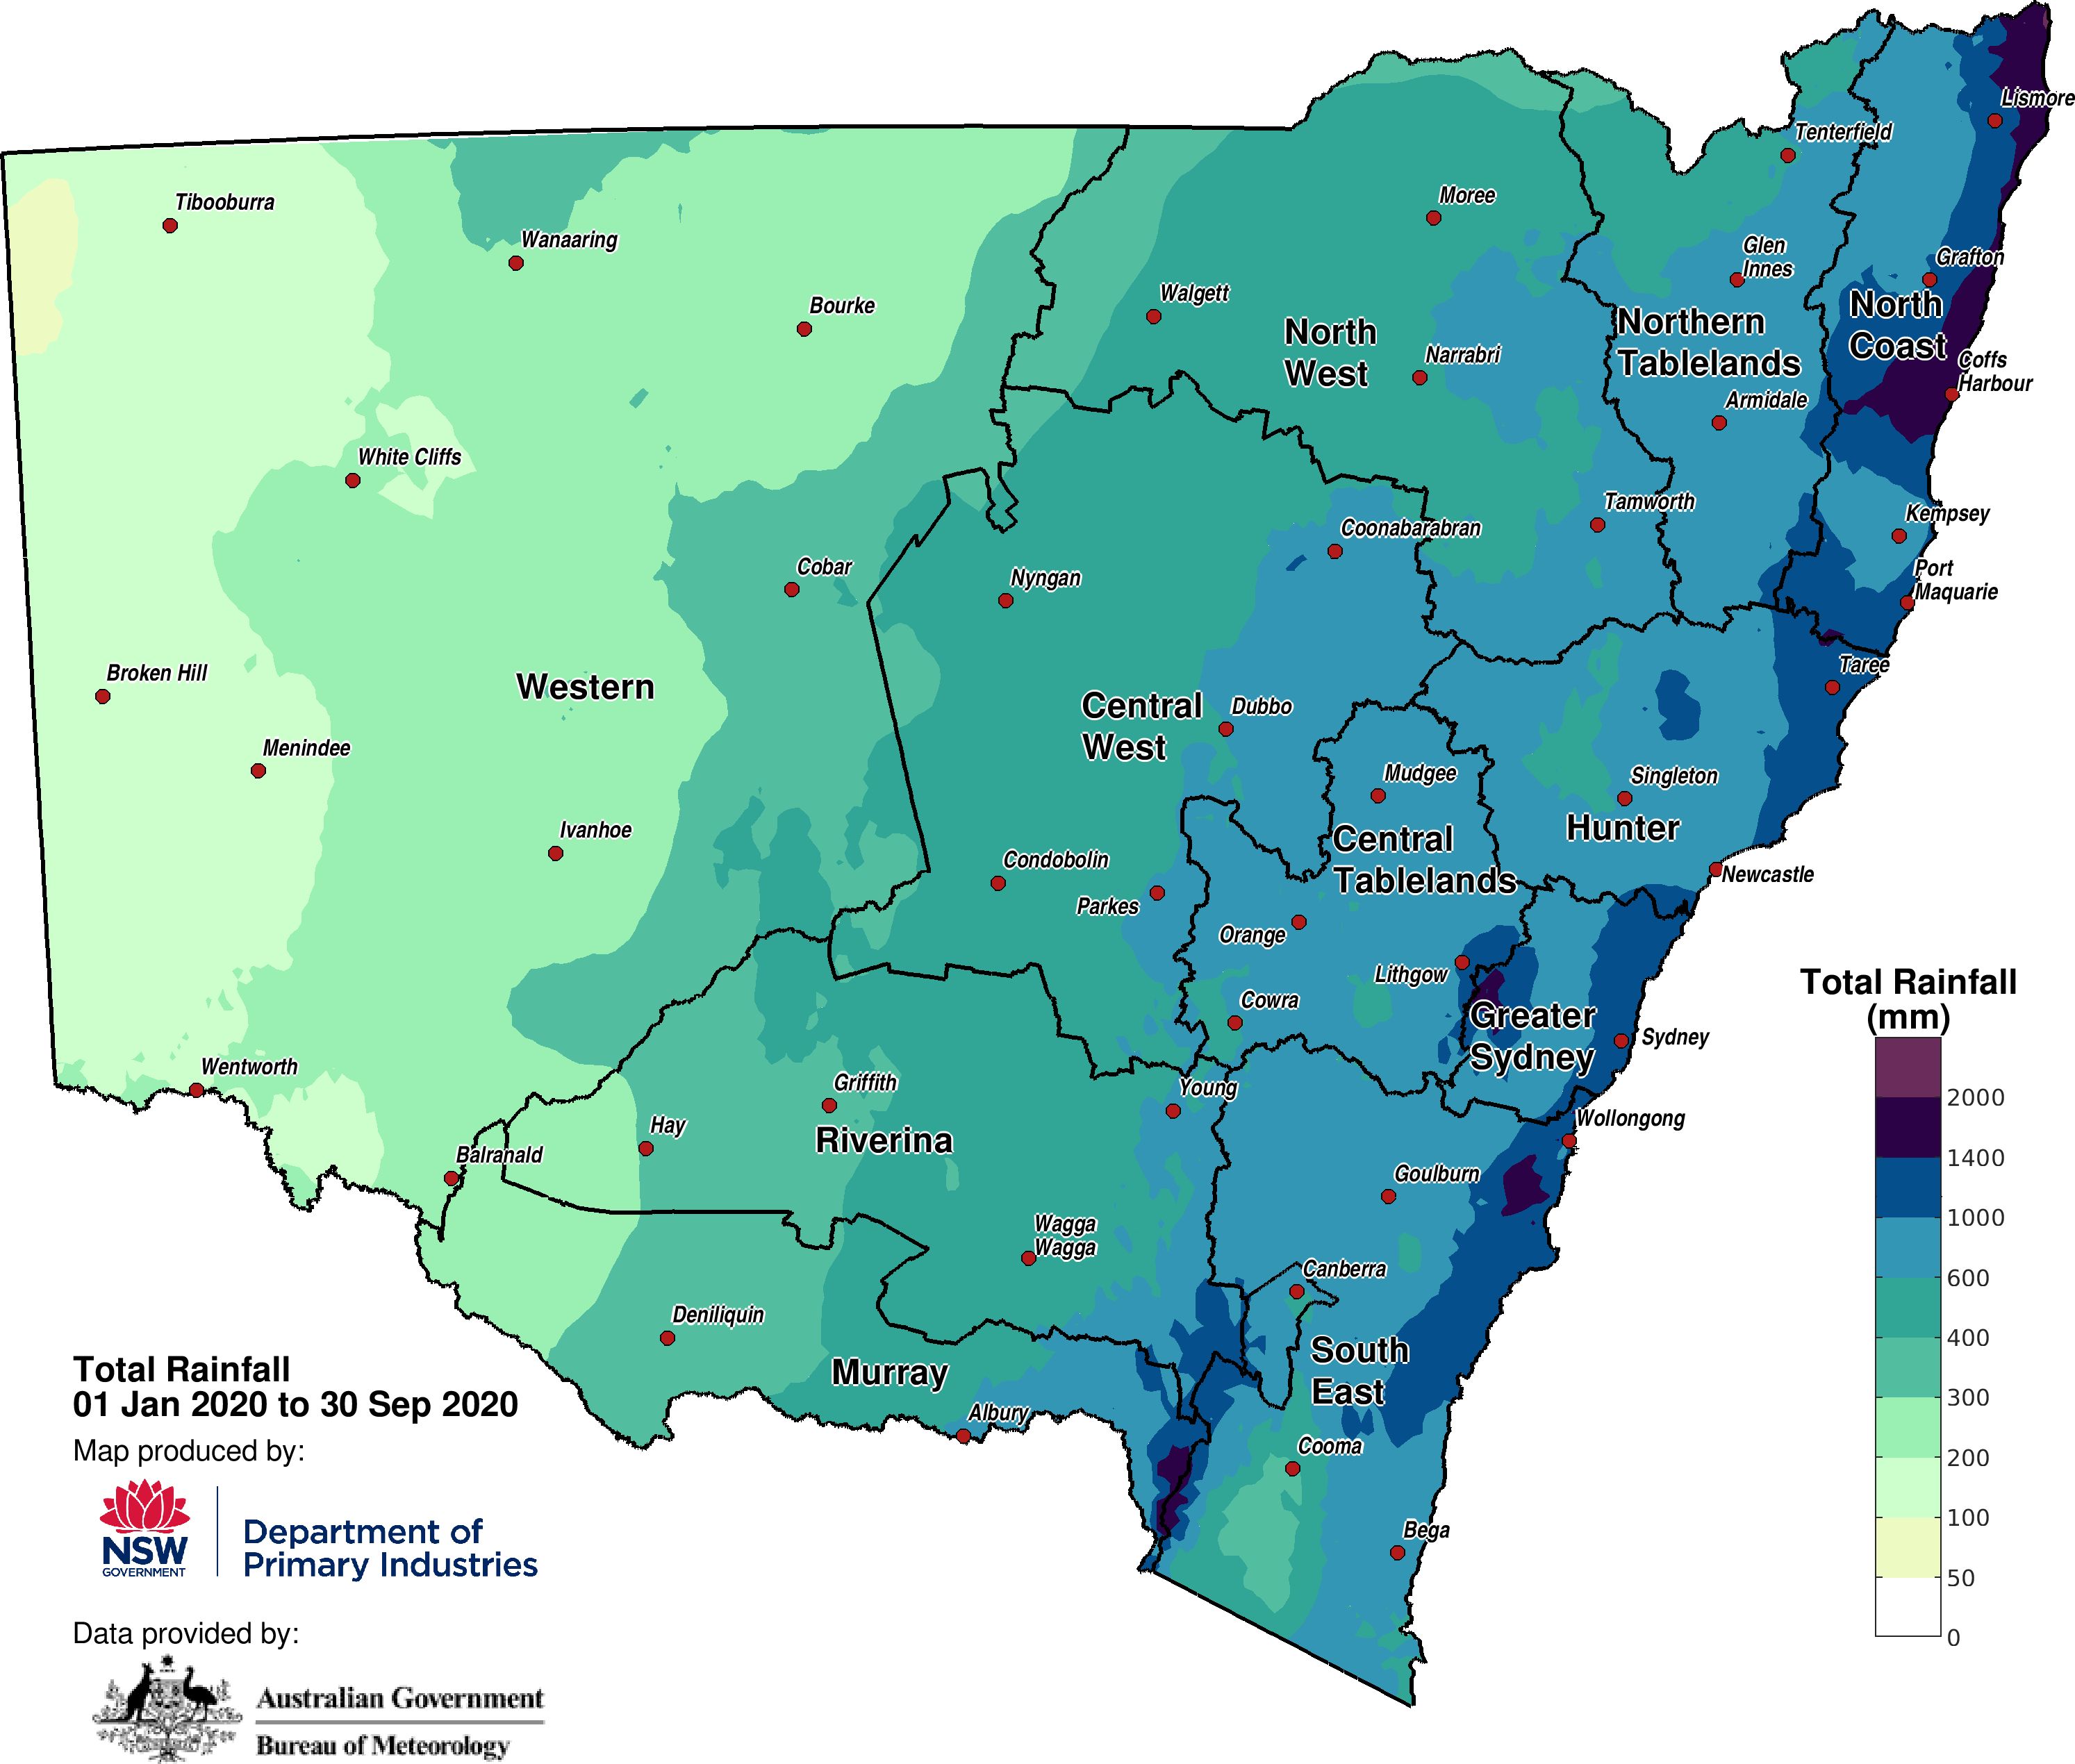 For an accessible explanation of this map contact the author scott.wallace@dpi.nsw.gov.au